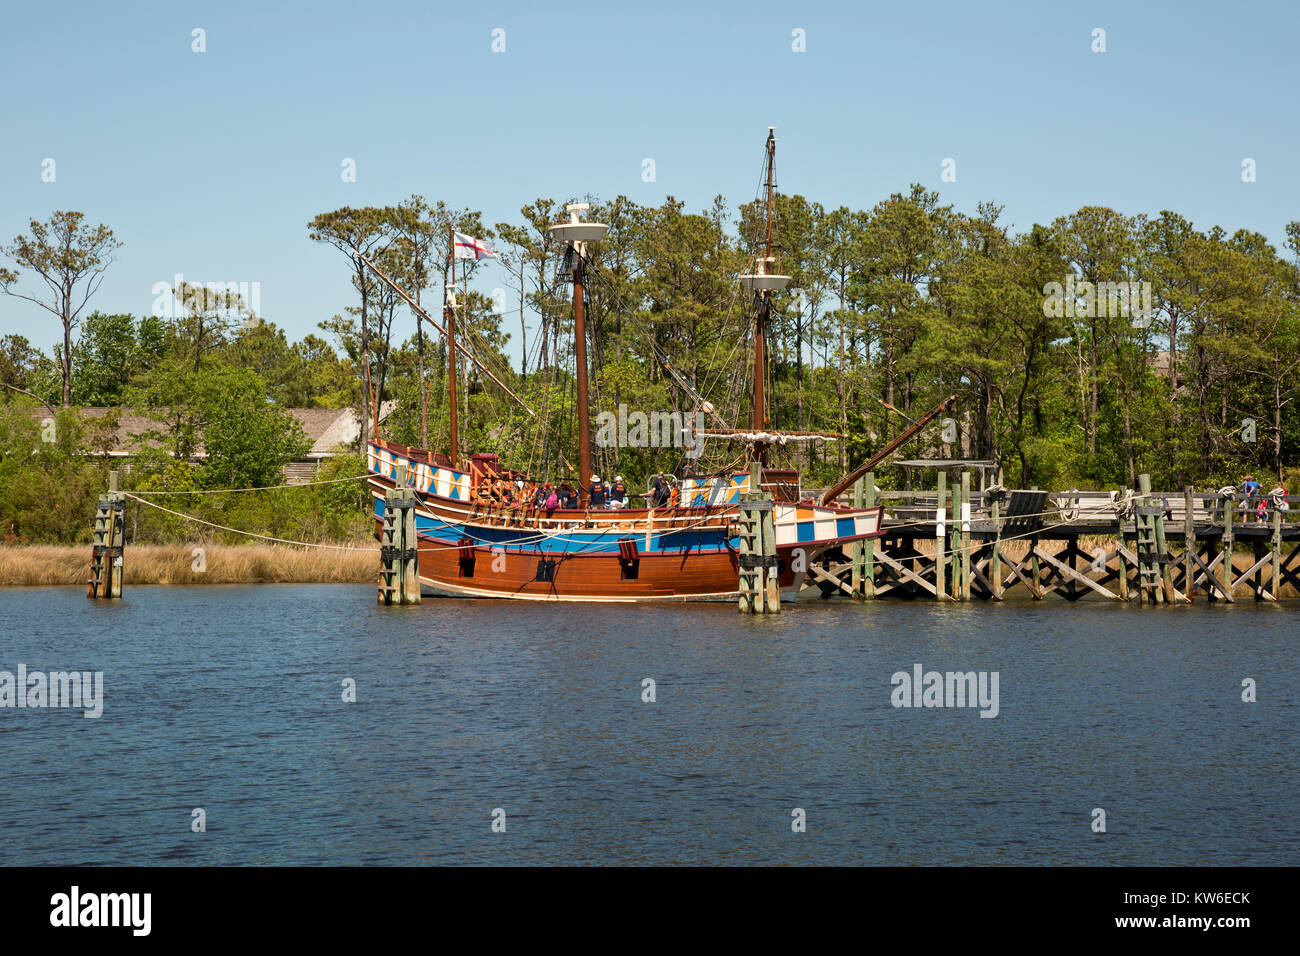 NC01195-00...NORTH CAROLINA - Visitors learning about the historic replica of the 16th Century Elizabeth ll, at - Stock Image